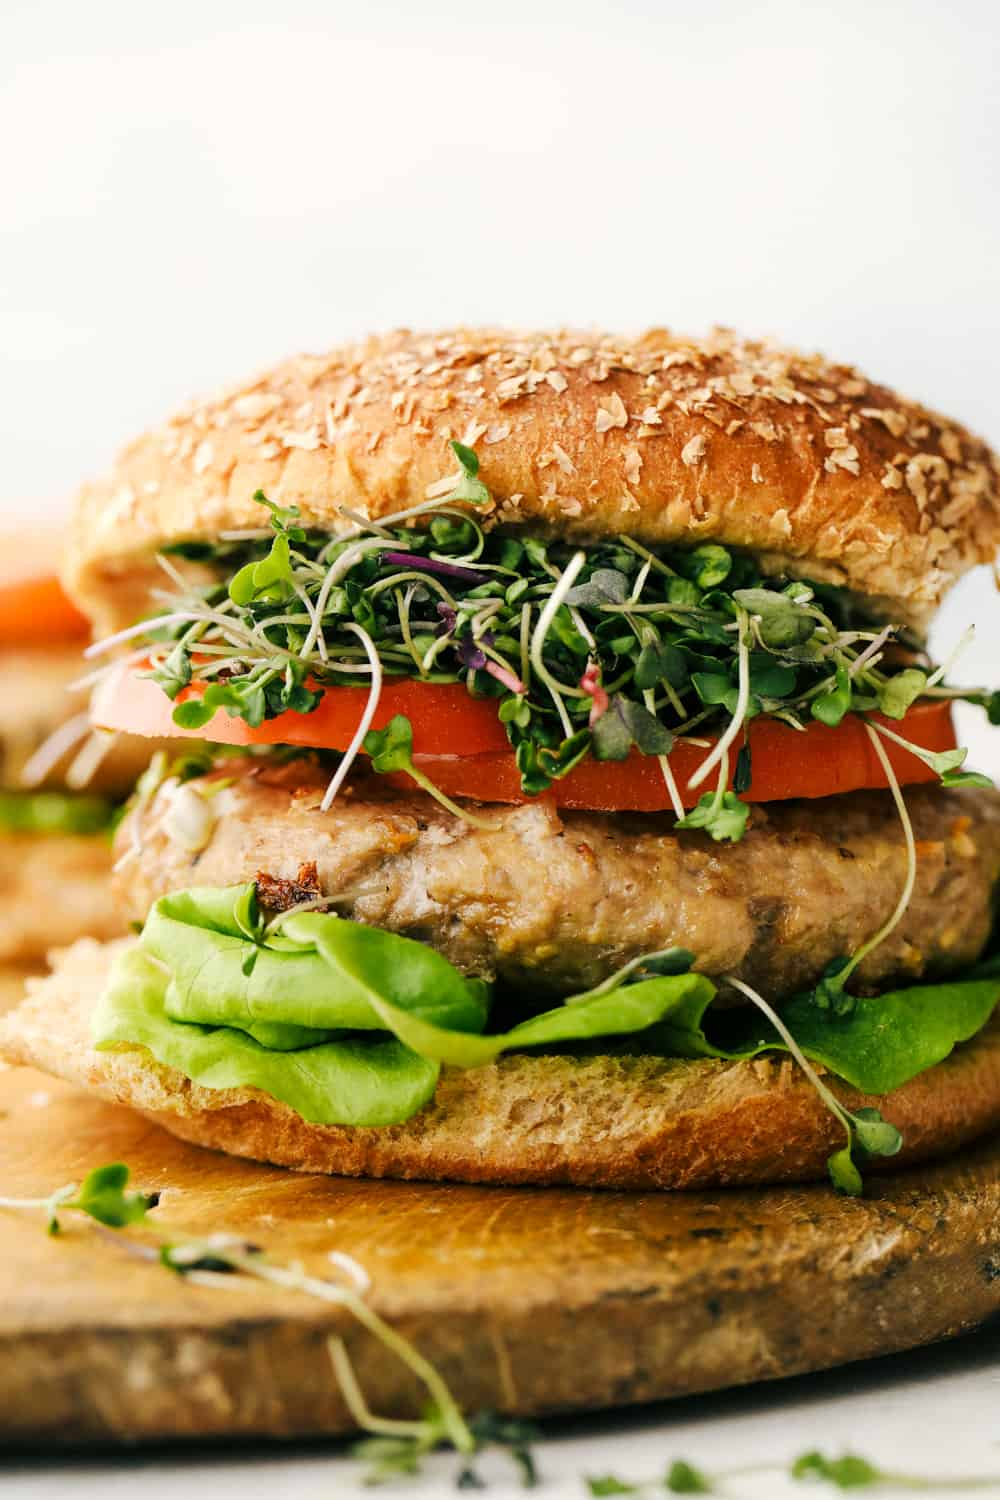 Juicy and flavorful air fryer turkey burgers.